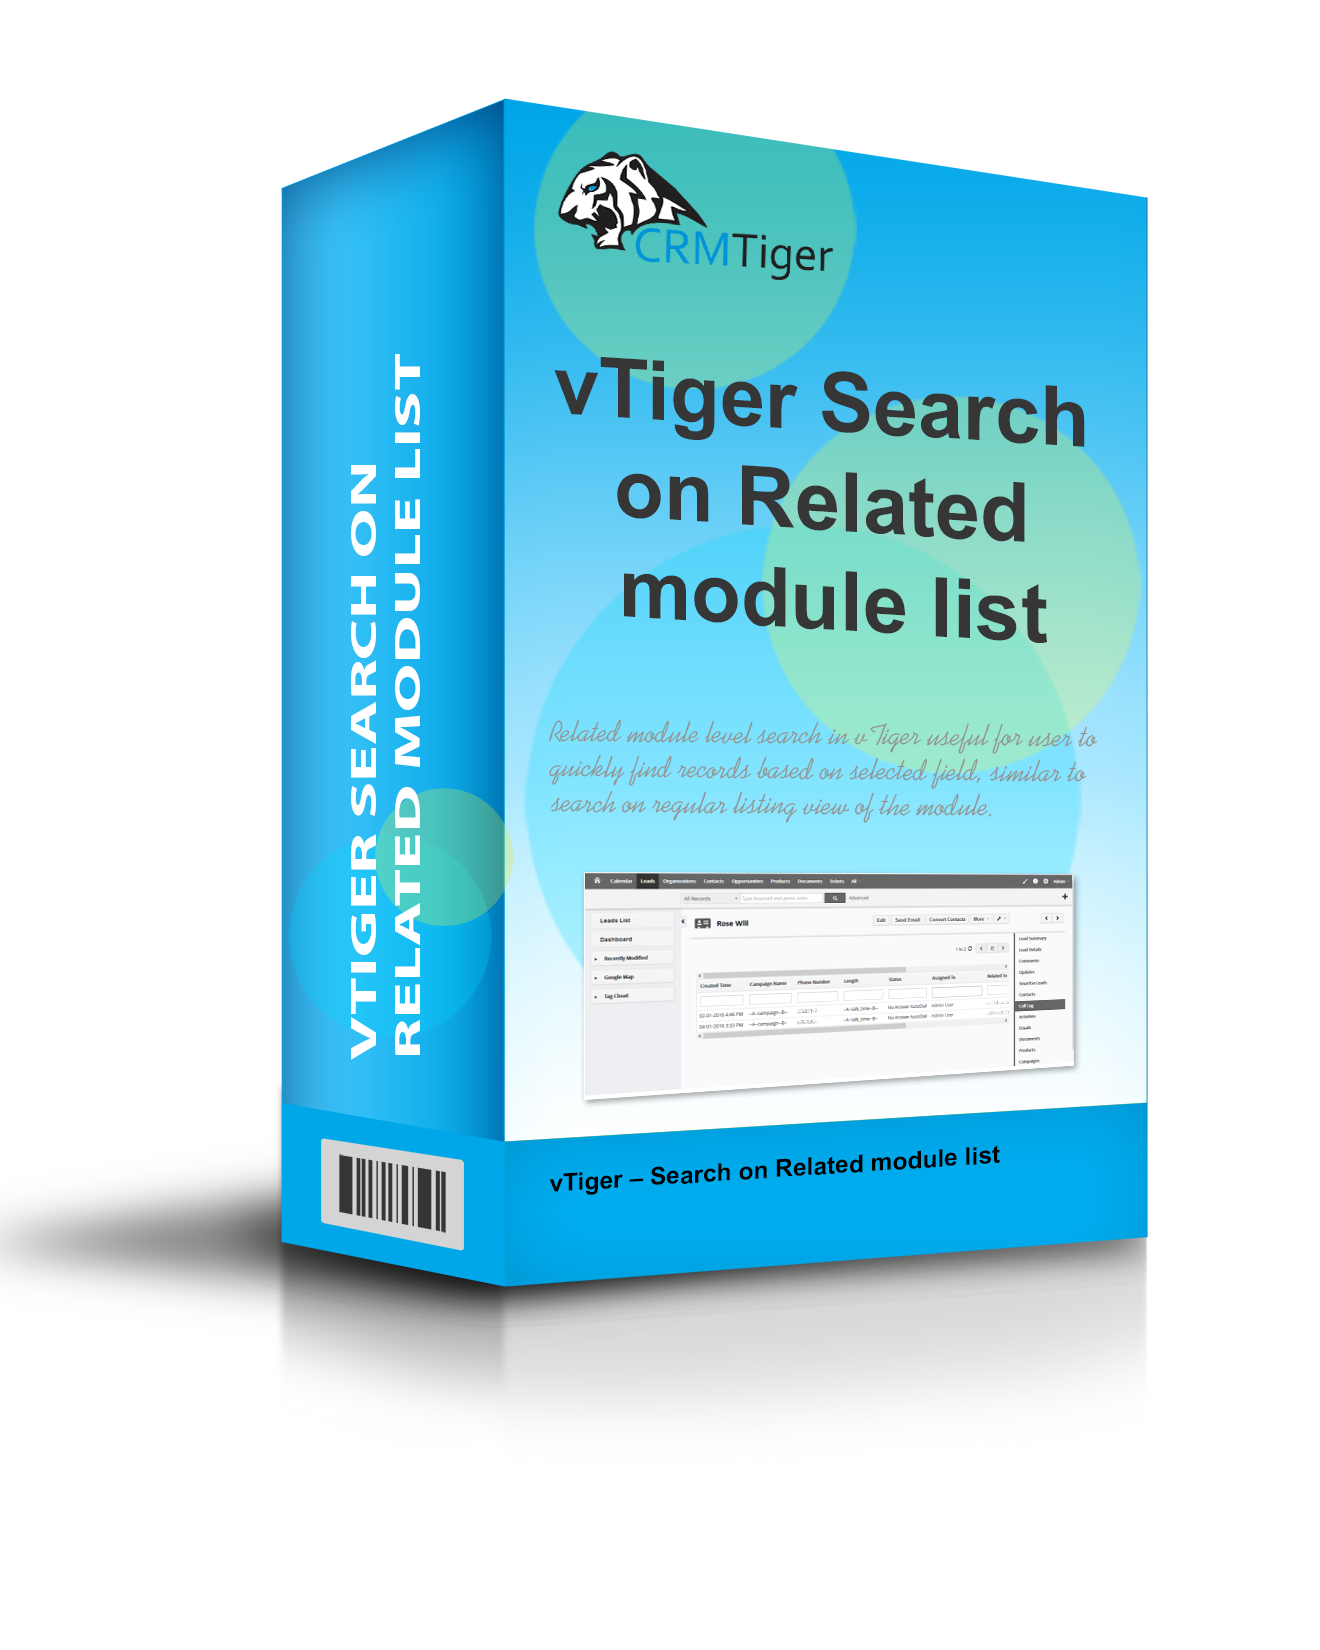 vTiger Search on Related module list